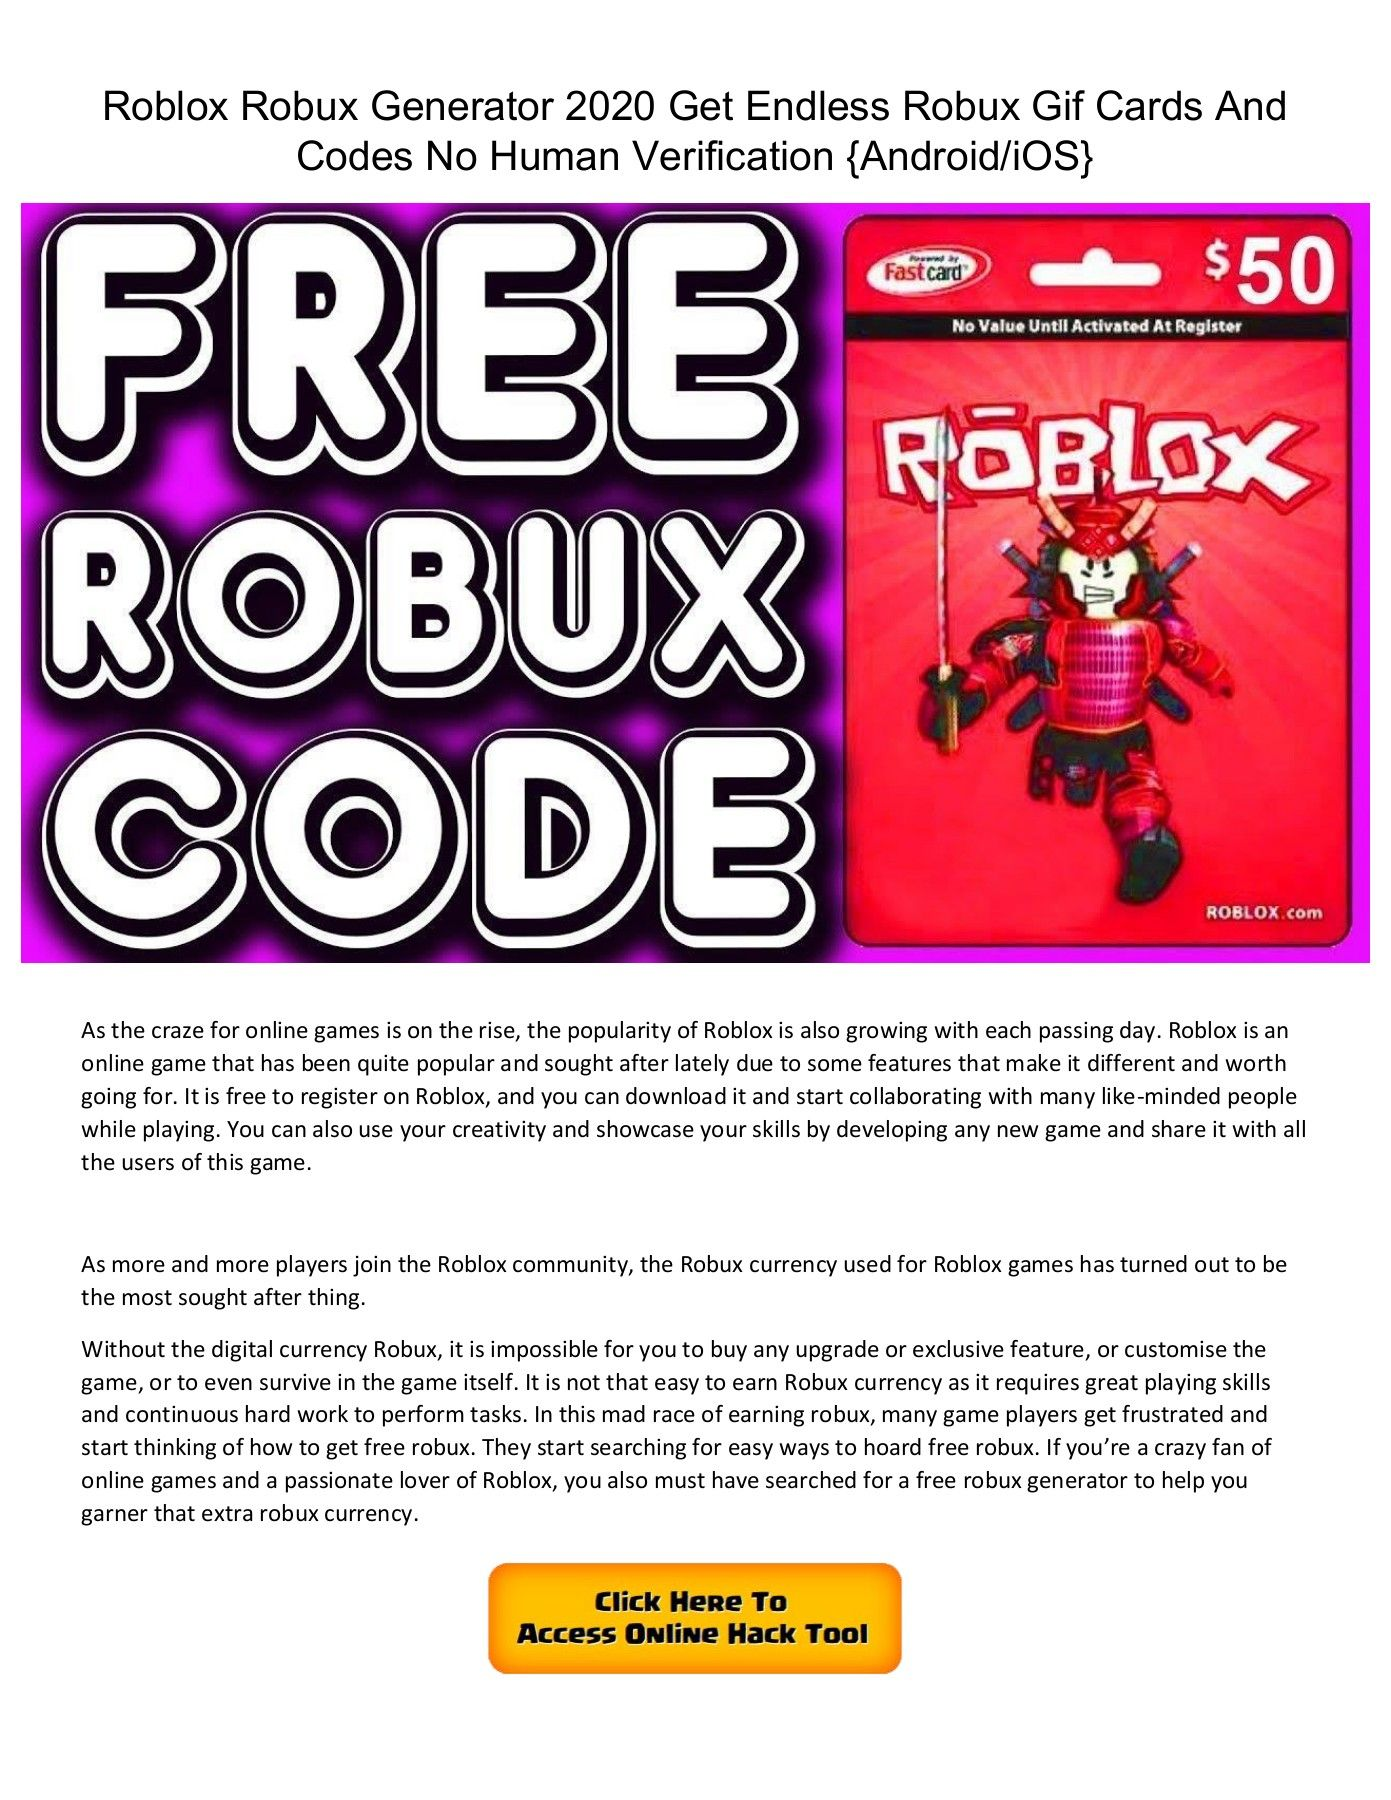 Instant Hack Robux How To Get Free Robux Gift Cards In 2020 Roblox Roblox Gifts Gift Card Generator